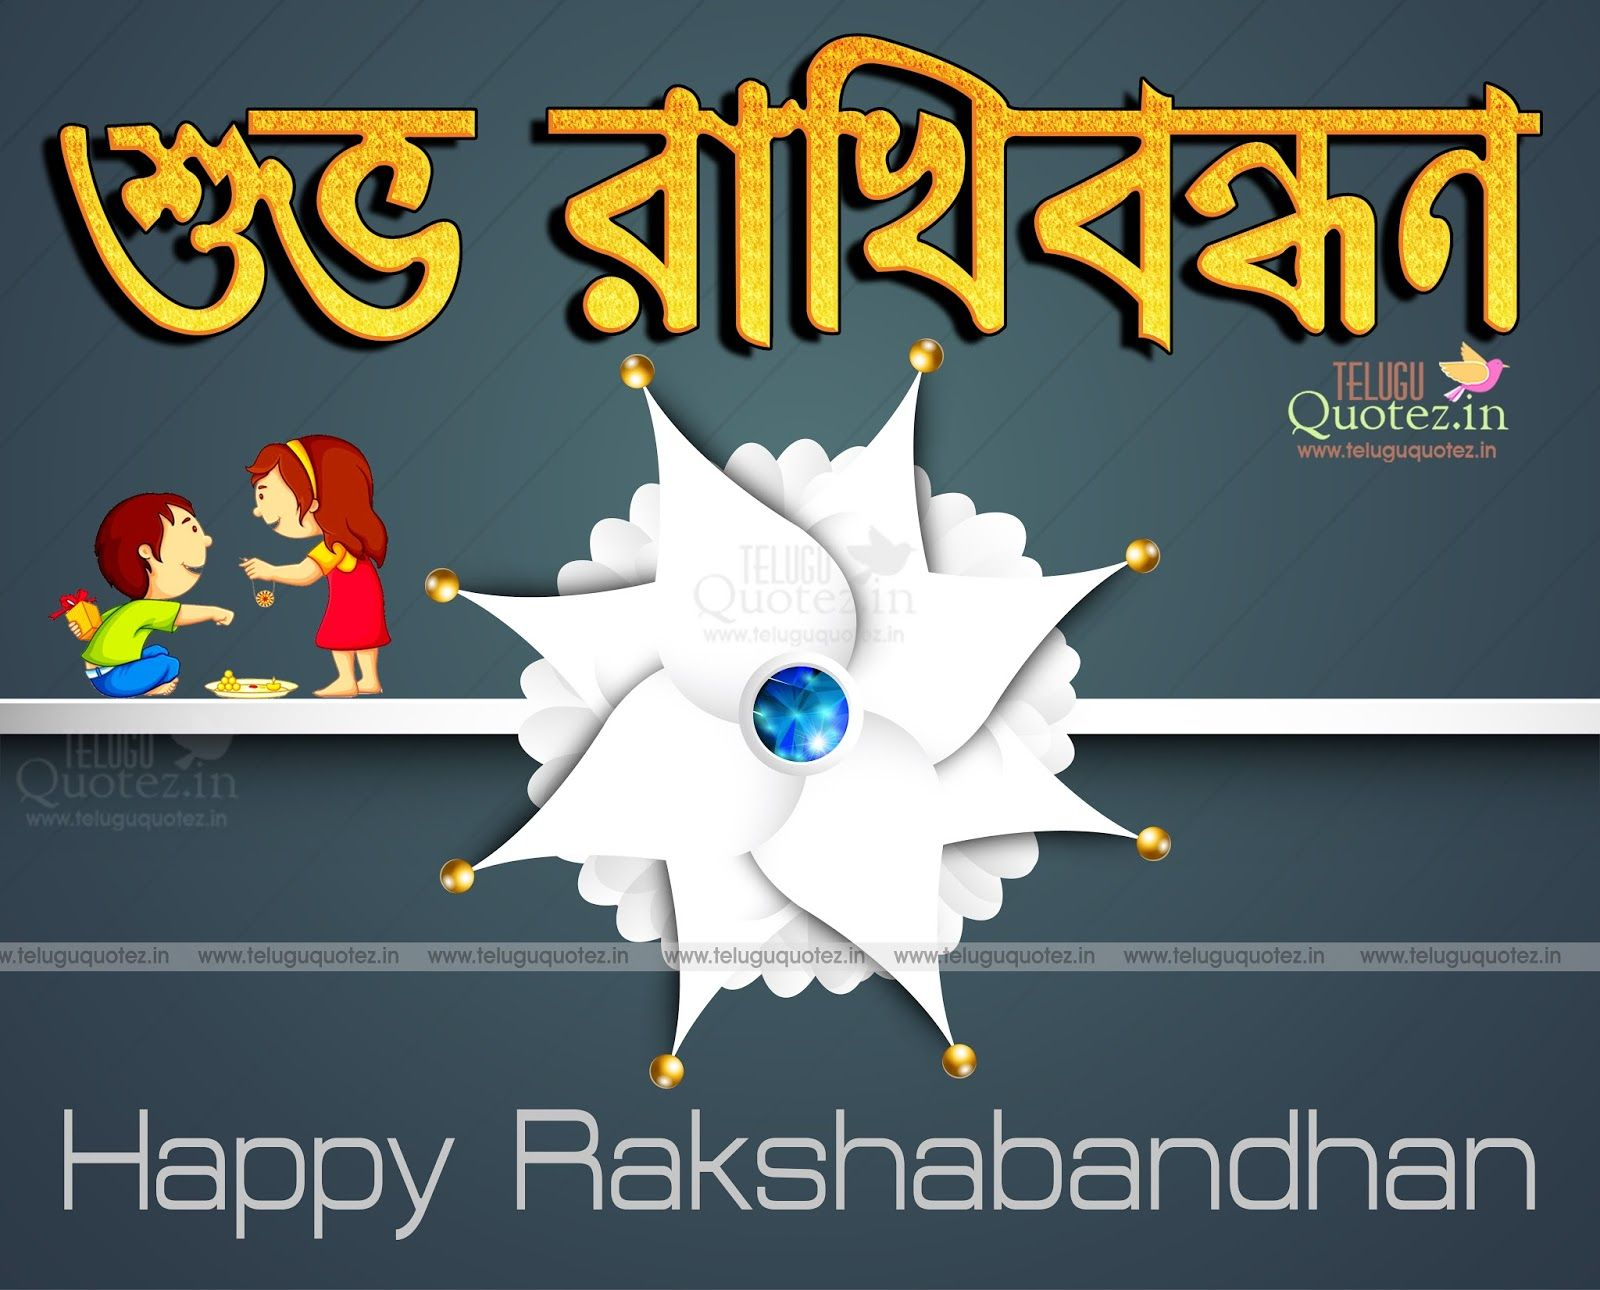 best ideas about raksha bandhan in hindi happy raksha bandhan bengali best quotes and sayings in bangla teluguquotez in telugu quotes